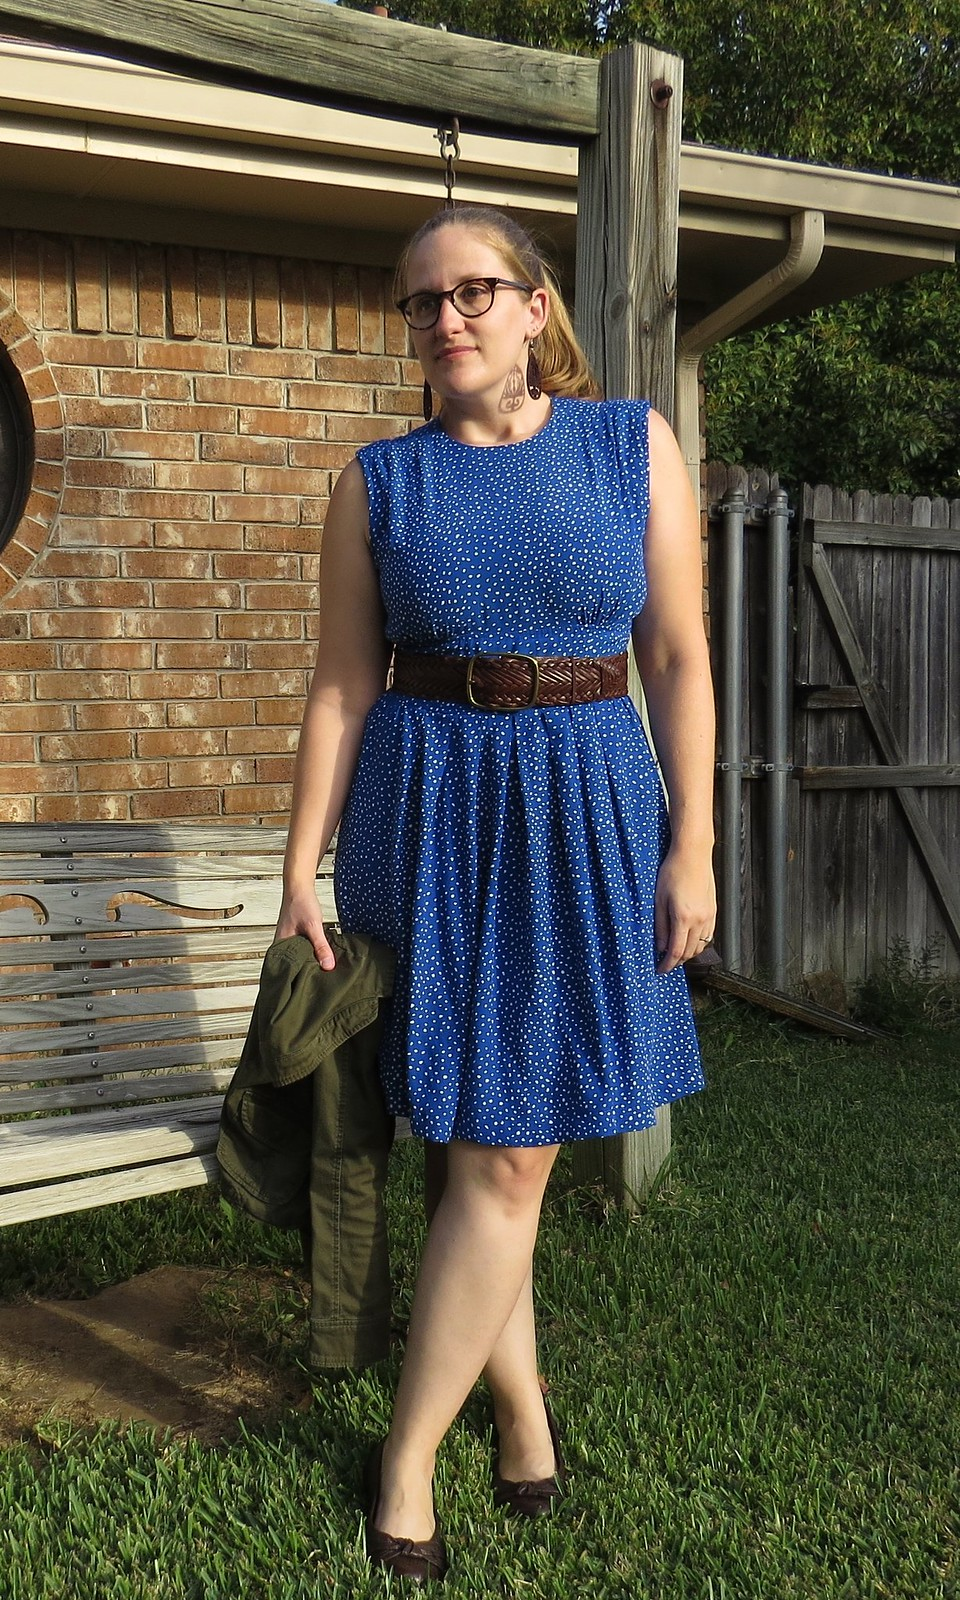 Blue Polka Dot Dress - After